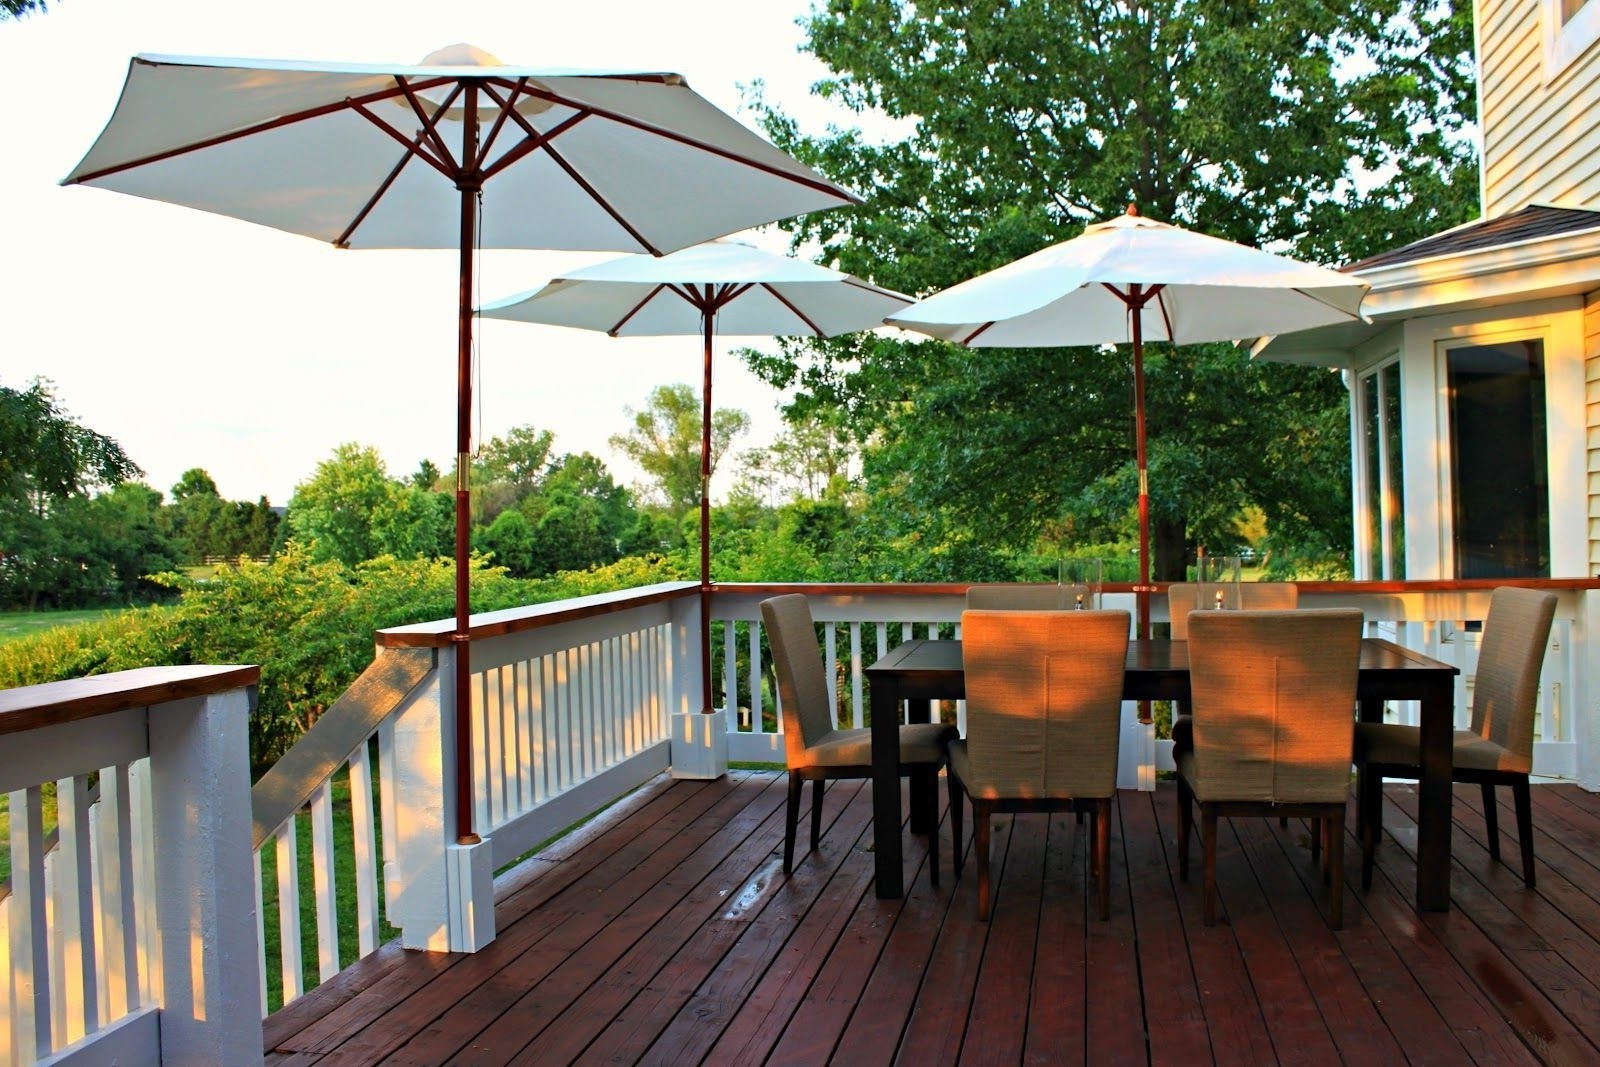 Recent Extended Patio Umbrellas For Image Result For How To Attach Patio Umbrella To Fence (View 14 of 20)